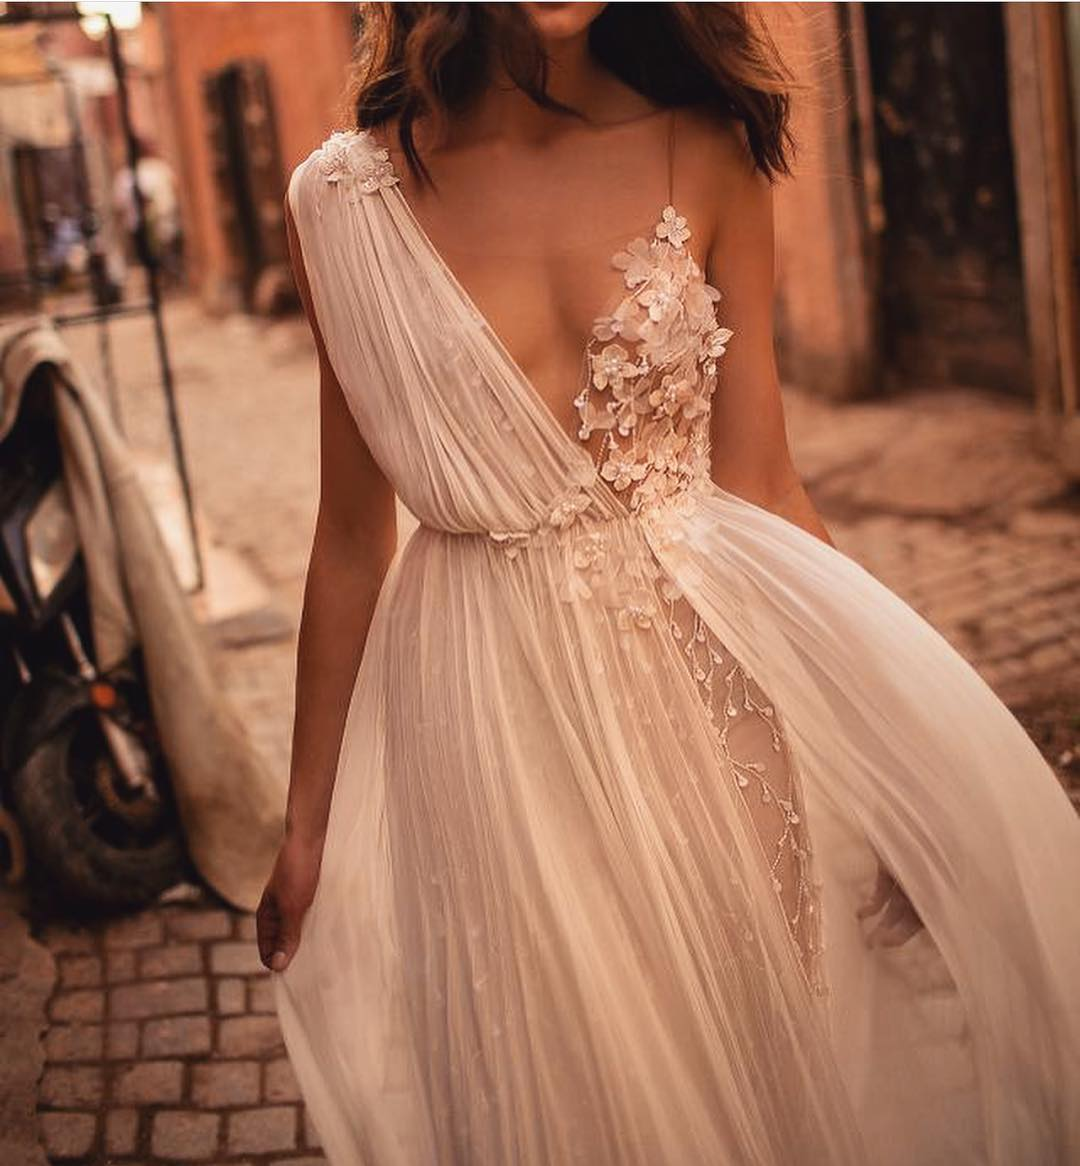 Tulle Dress With One Shoulder And Spaghetti Strap For Special Summer Events 2020